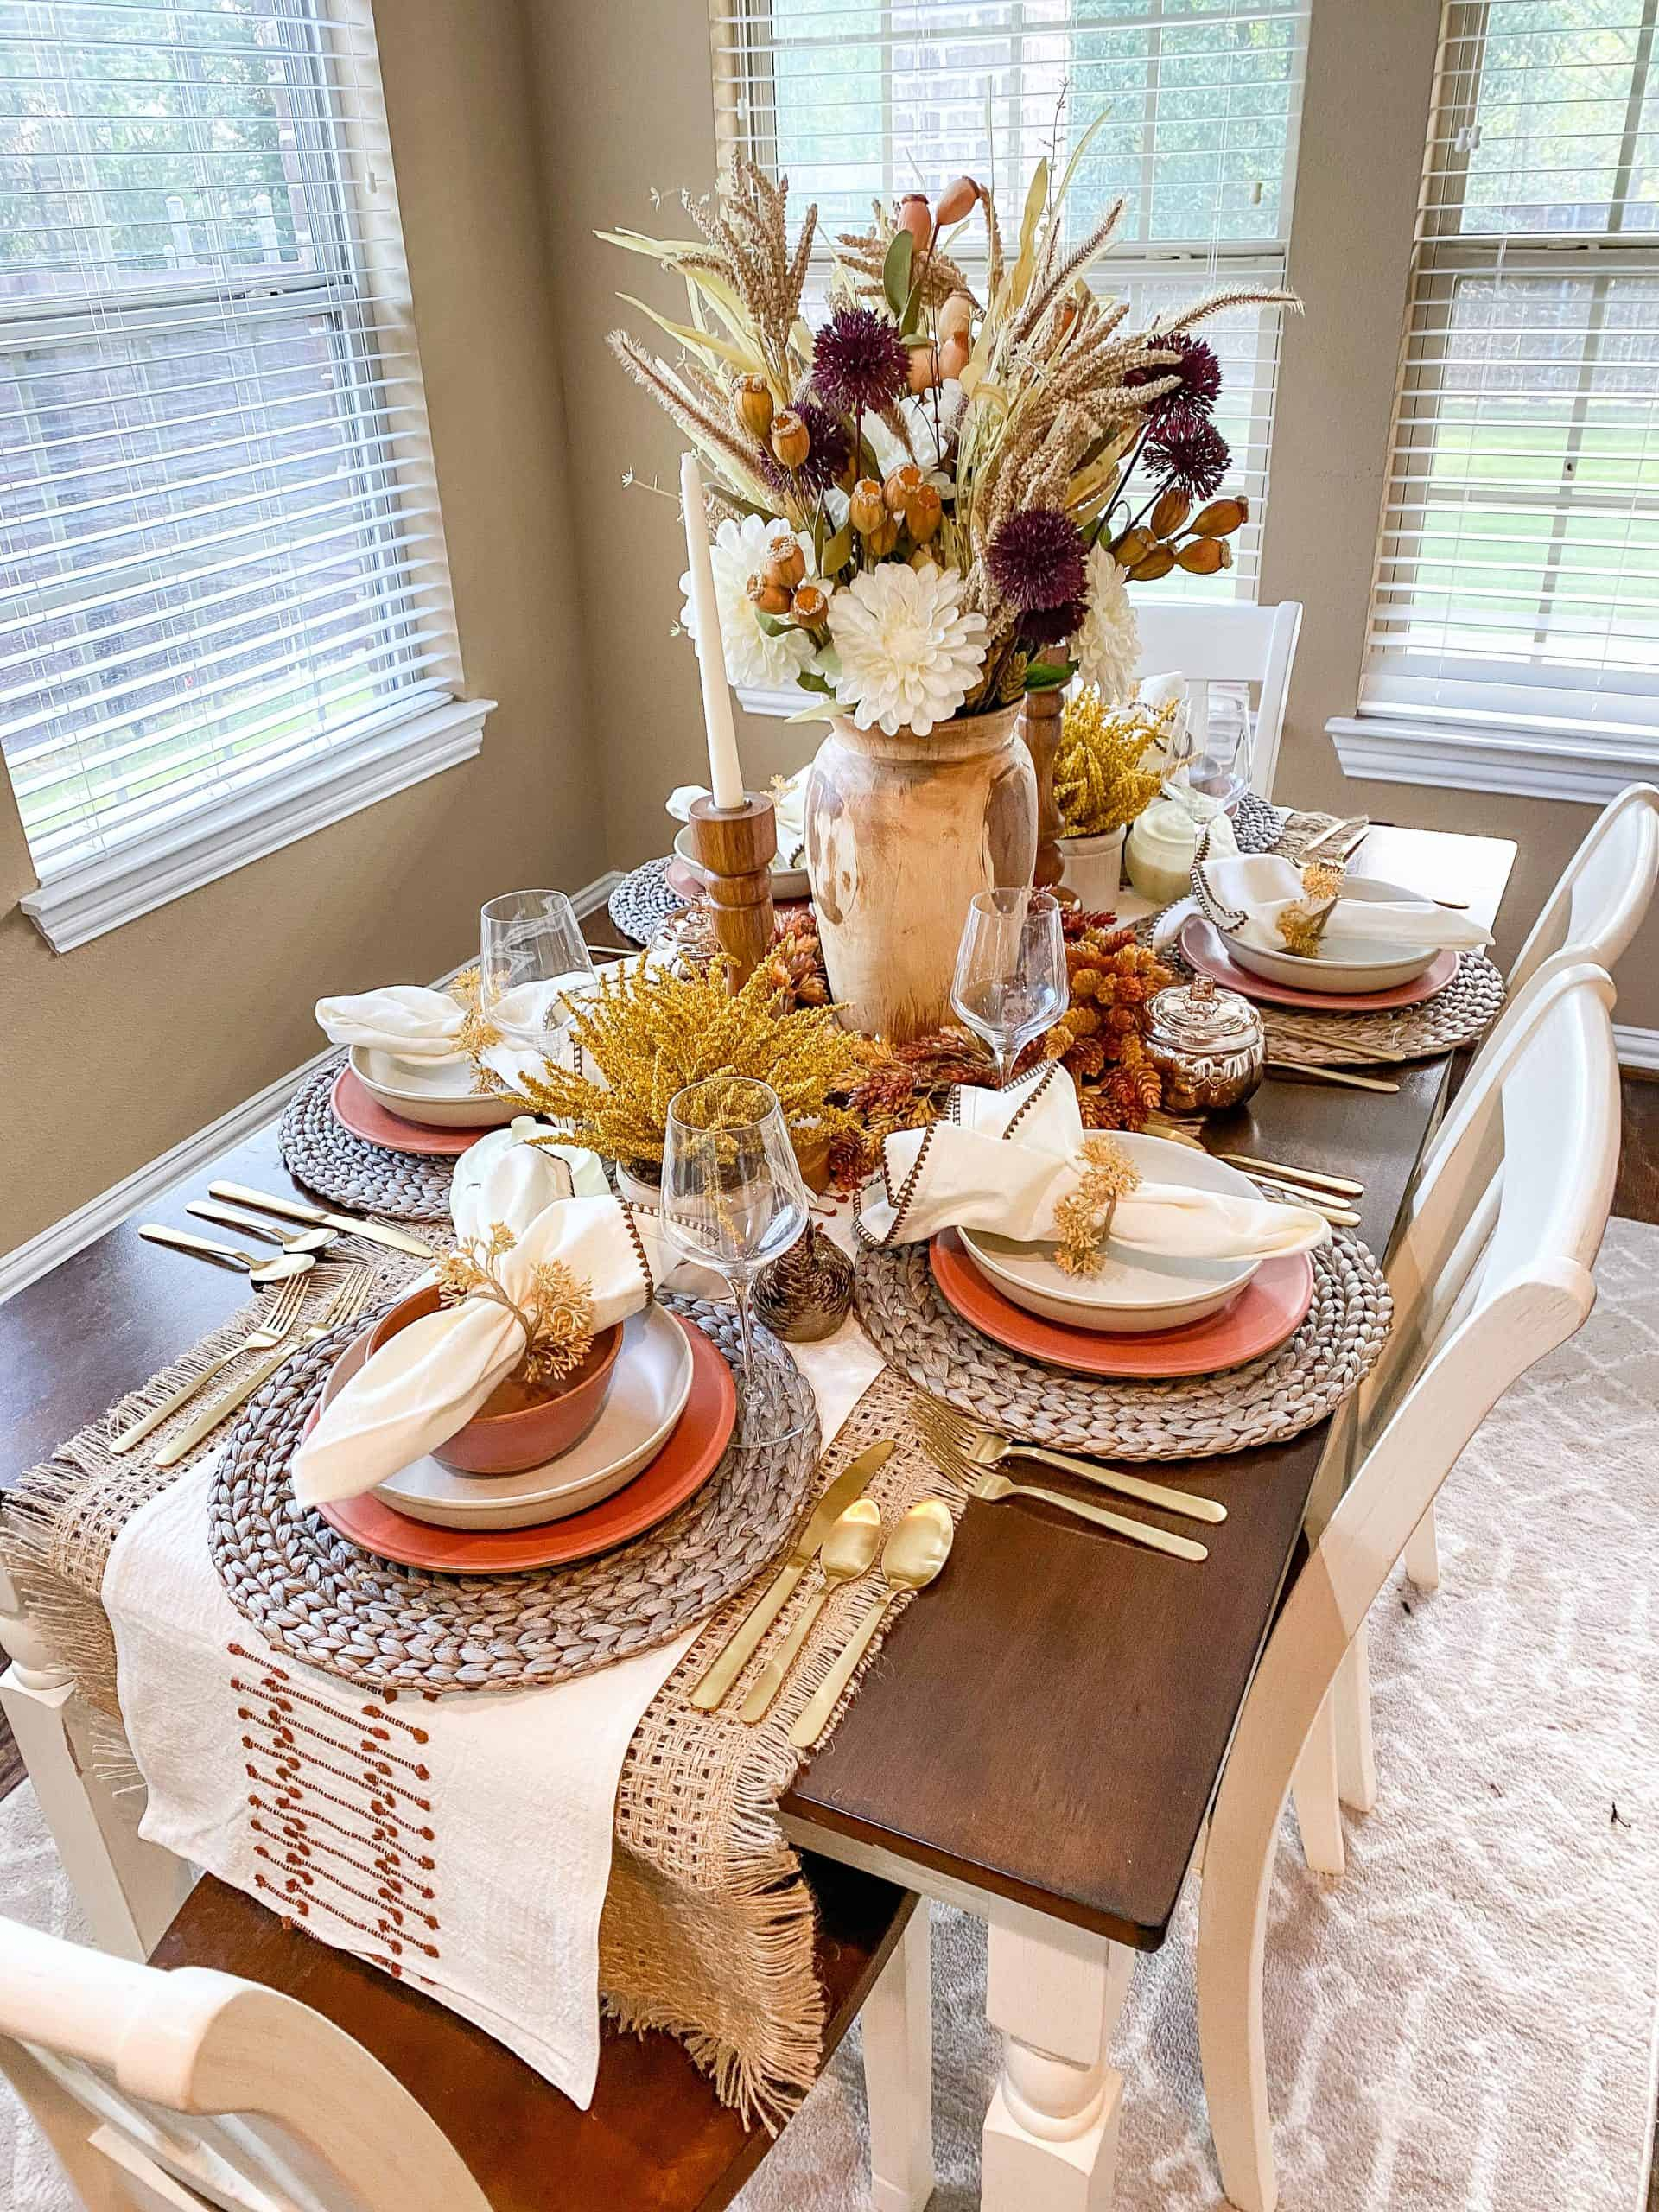 Thanksgiving Prep by popular Dallas lifestyle blog, Glamorous Versatility: image of table set with straw placemats, white fabric table runner, gold utensils, a wooden vase filled with dried flowers, clear wine glasses, white ceramic plates, terra cotta bowls, orange ceramic plates, wooden candlestick holders, white candlesticks, and white fabric napkins.